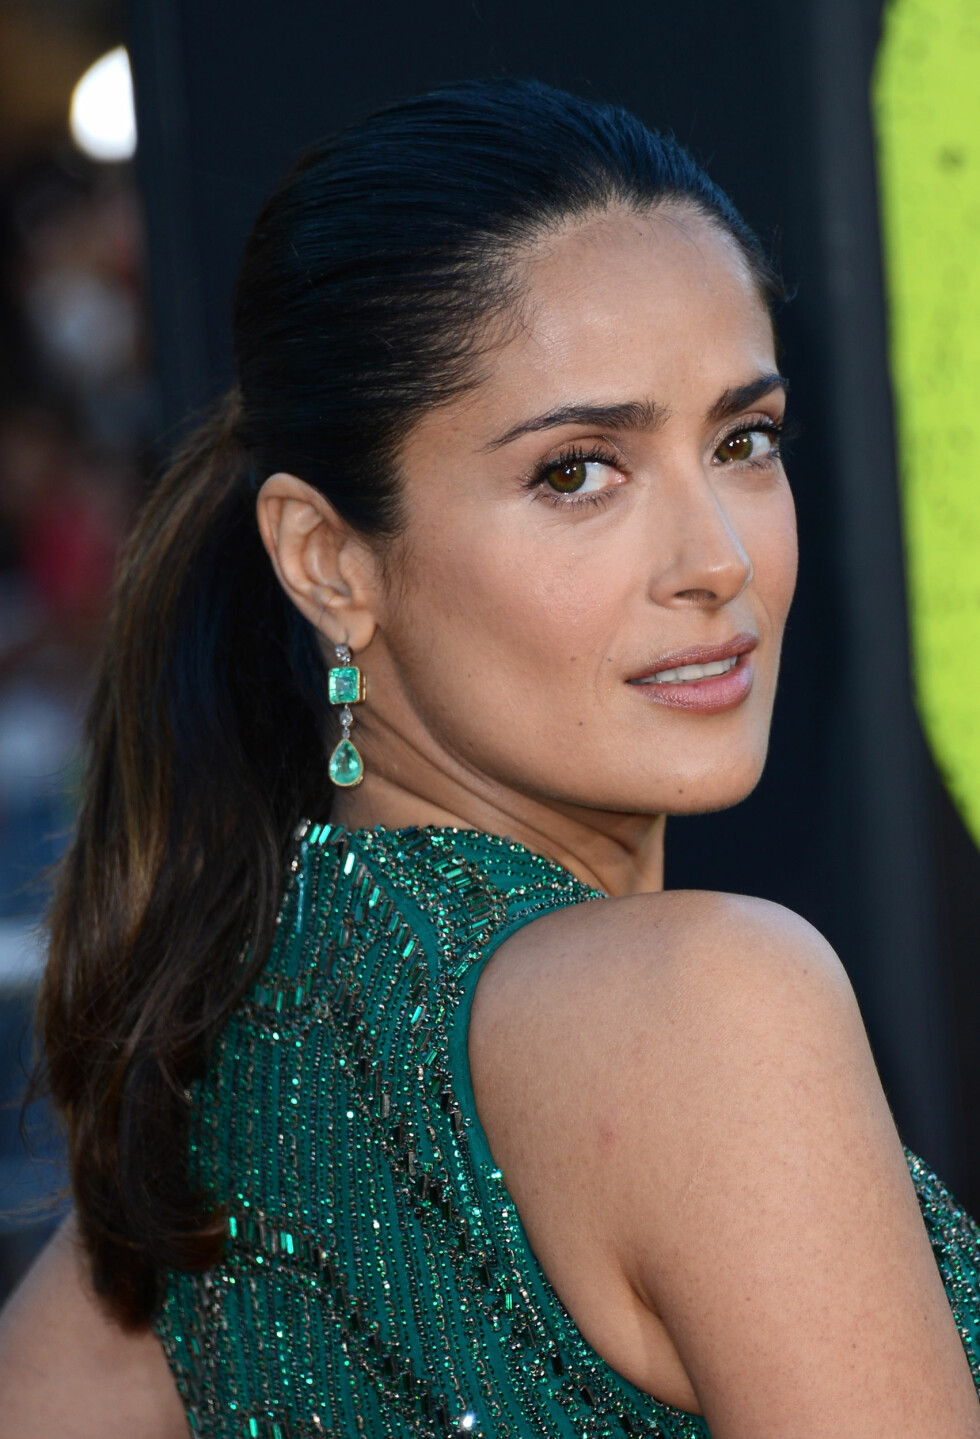 LOS ANGELES, CA - JUNE 25:  Actress Salma Hayek arrives at the premiere of Universal Pictures Savages at Westwood Village on June 25, 2012 in Los Angeles, California.  (Photo by Michael Buckner/Getty Images) Foto: Getty Images/Getty Images/All Over Press